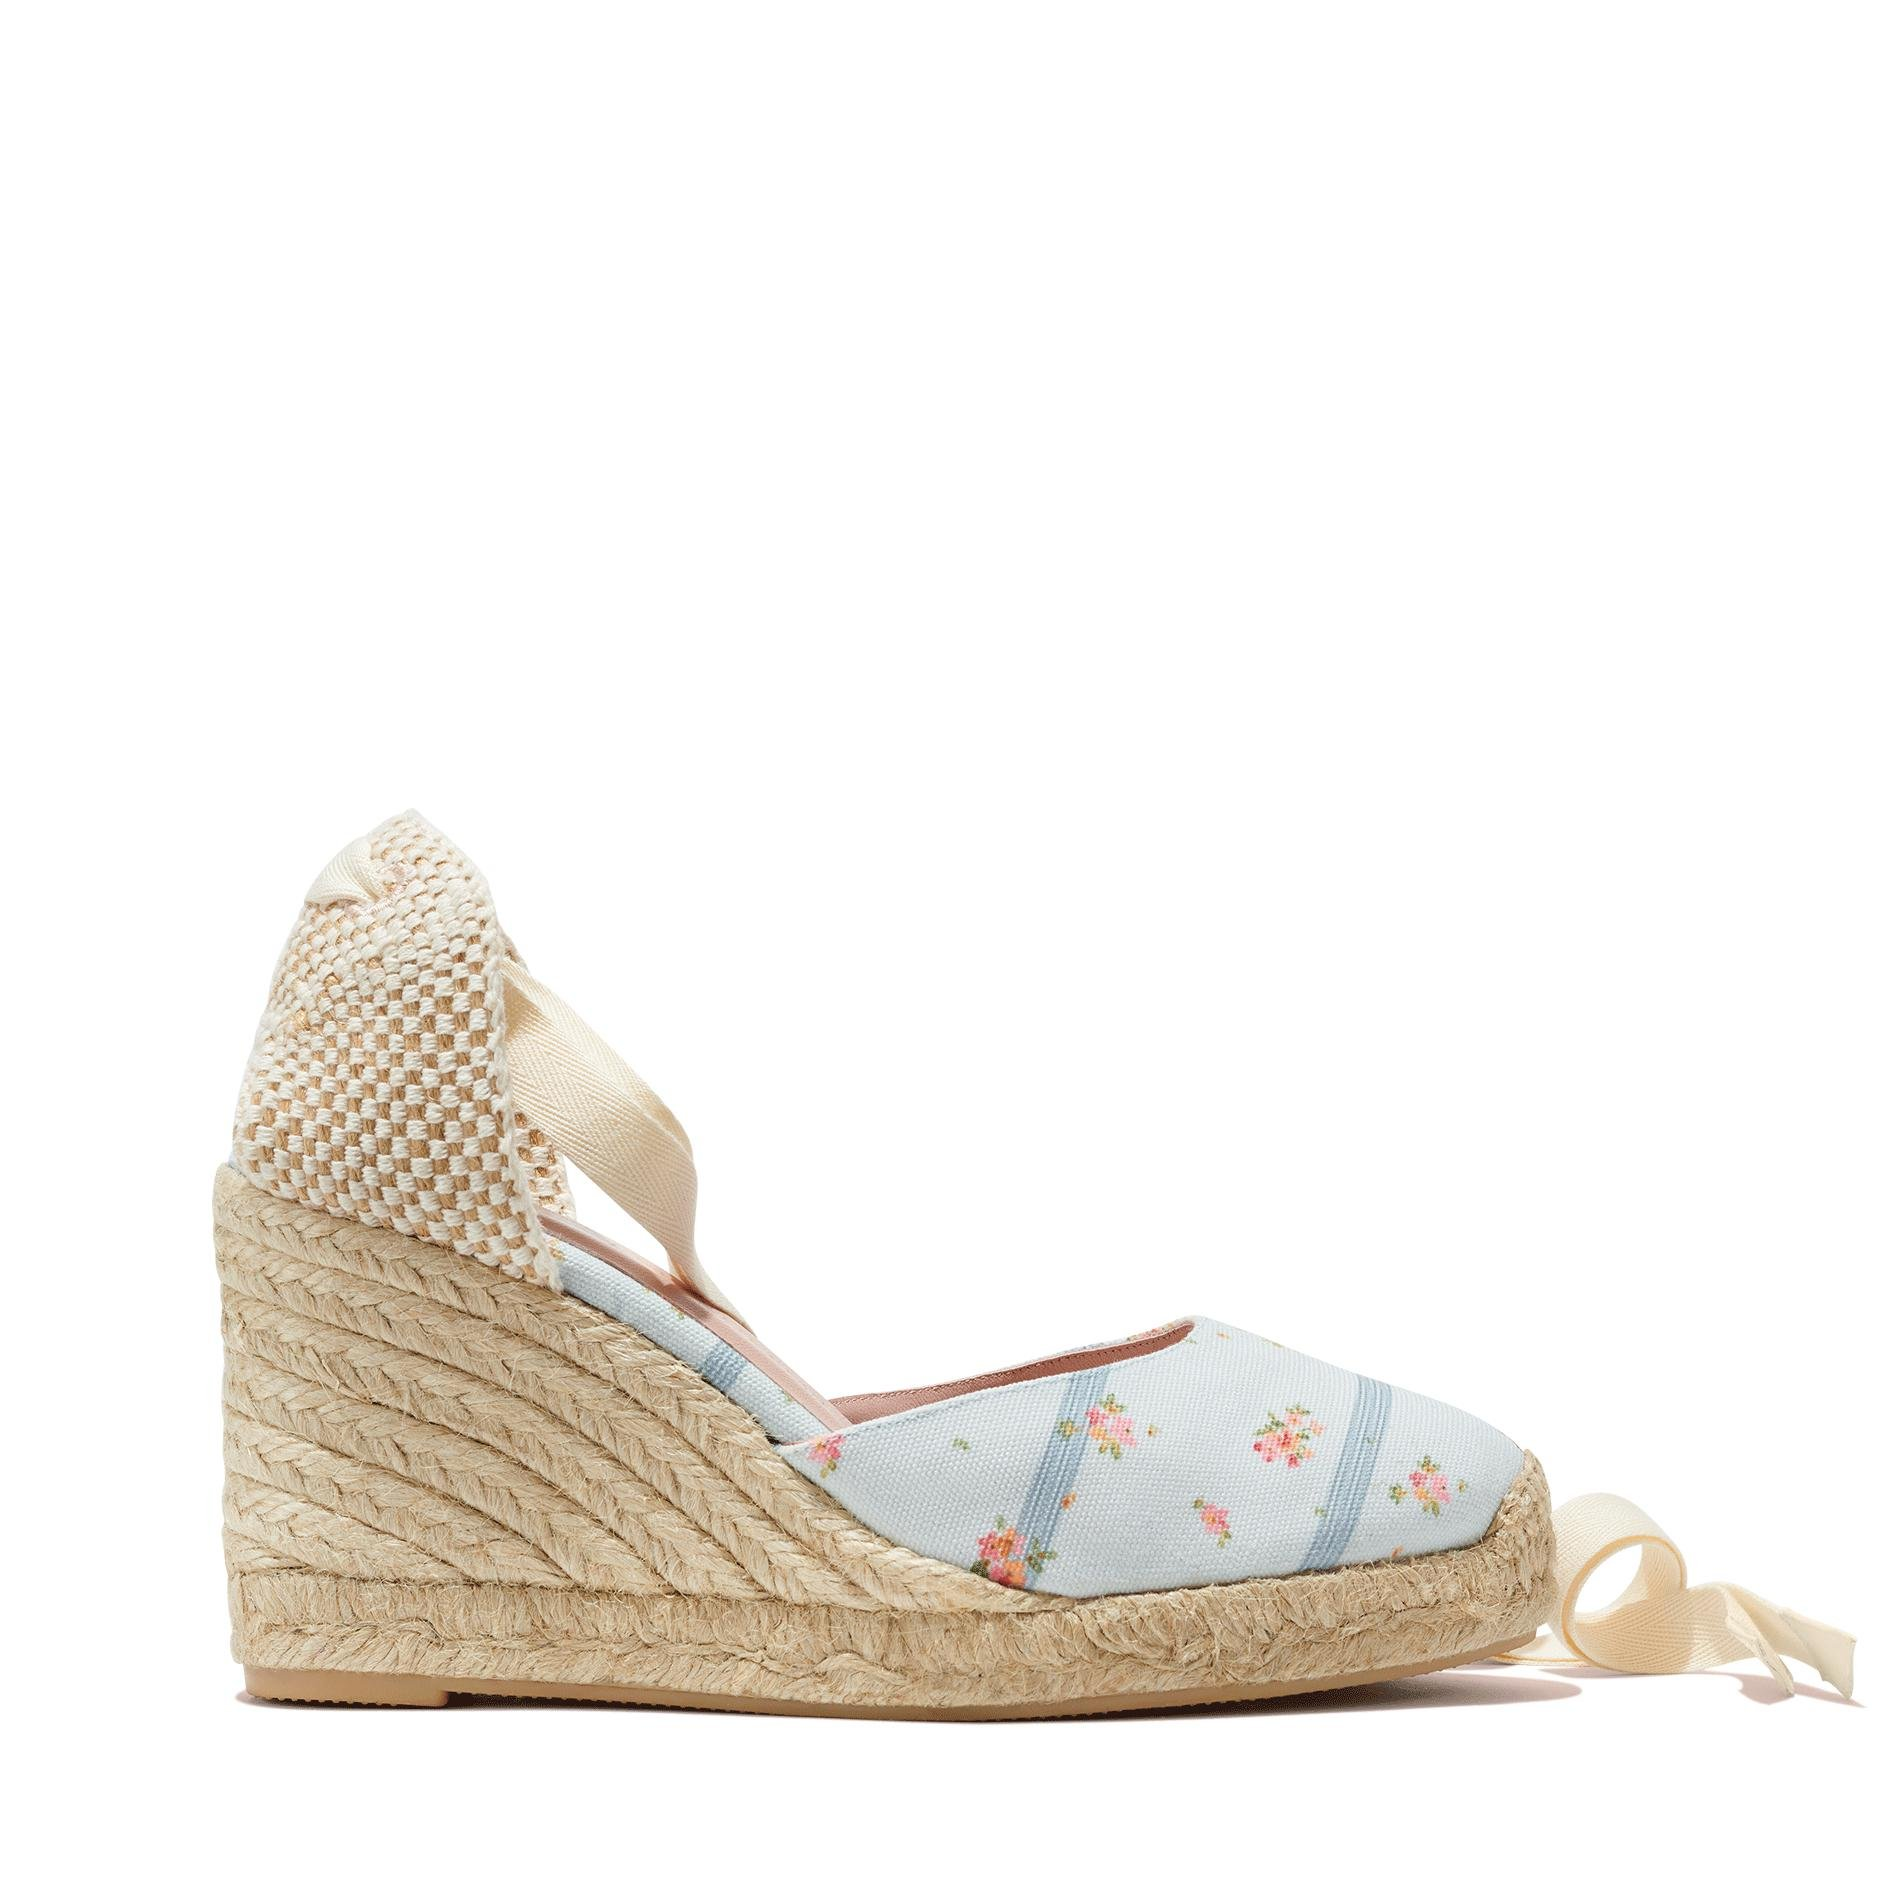 Gal Meets Glam x Margaux - The Espadrille in Blue Floral Stripe